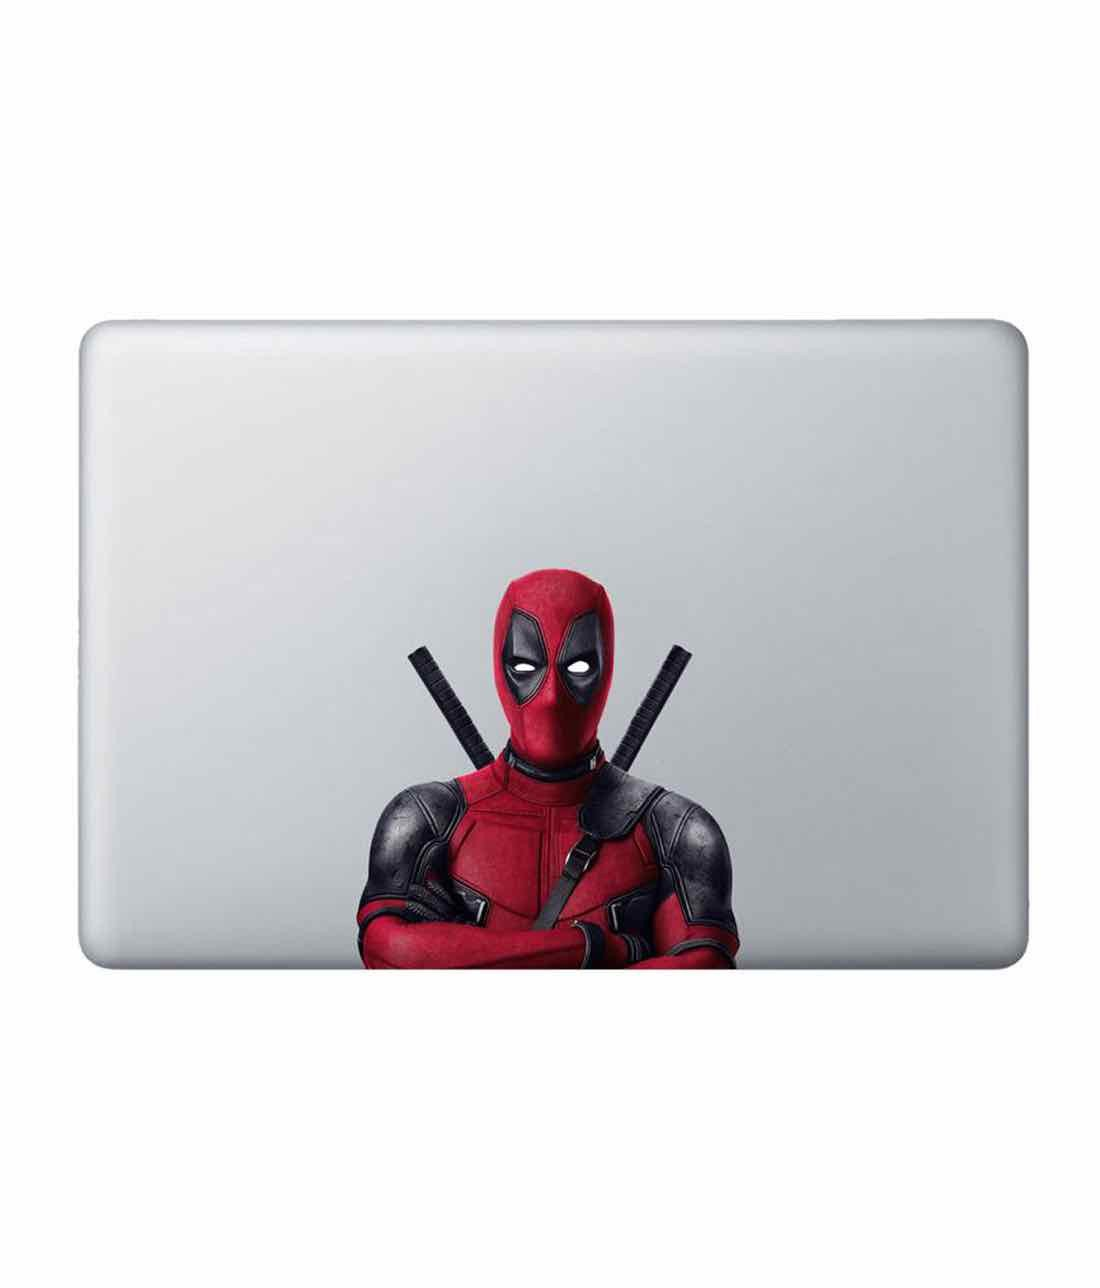 Deadpool Stance Laptop Decal by Macmerise